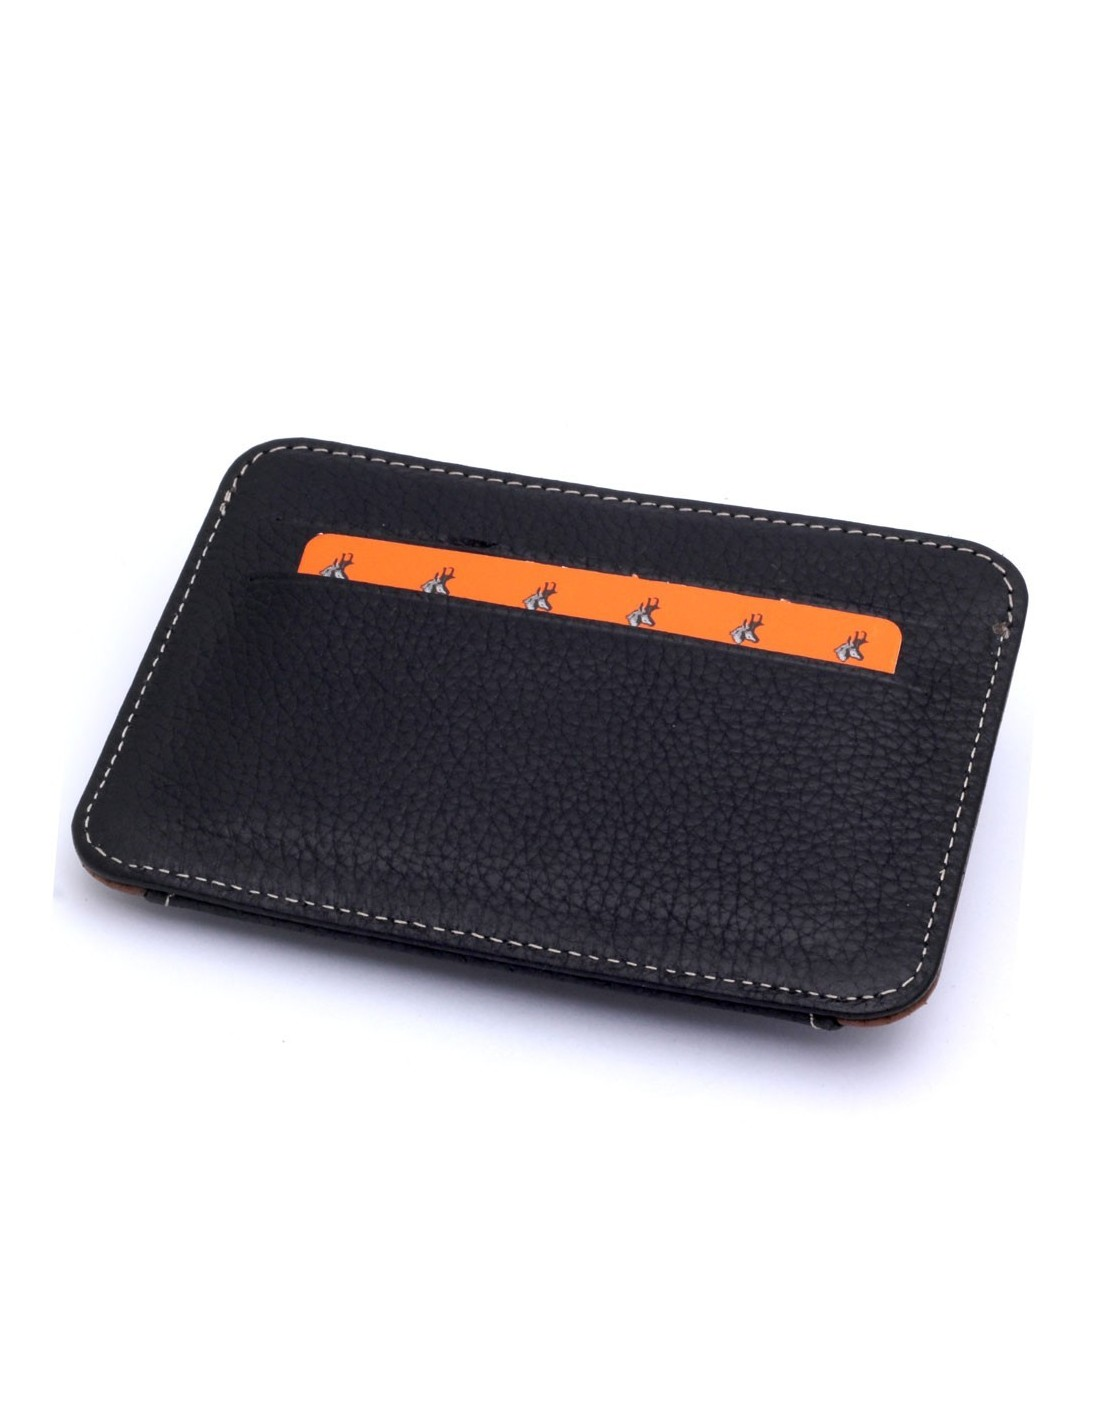 Personalized Leather Wallet - Turkstyleshop Gift